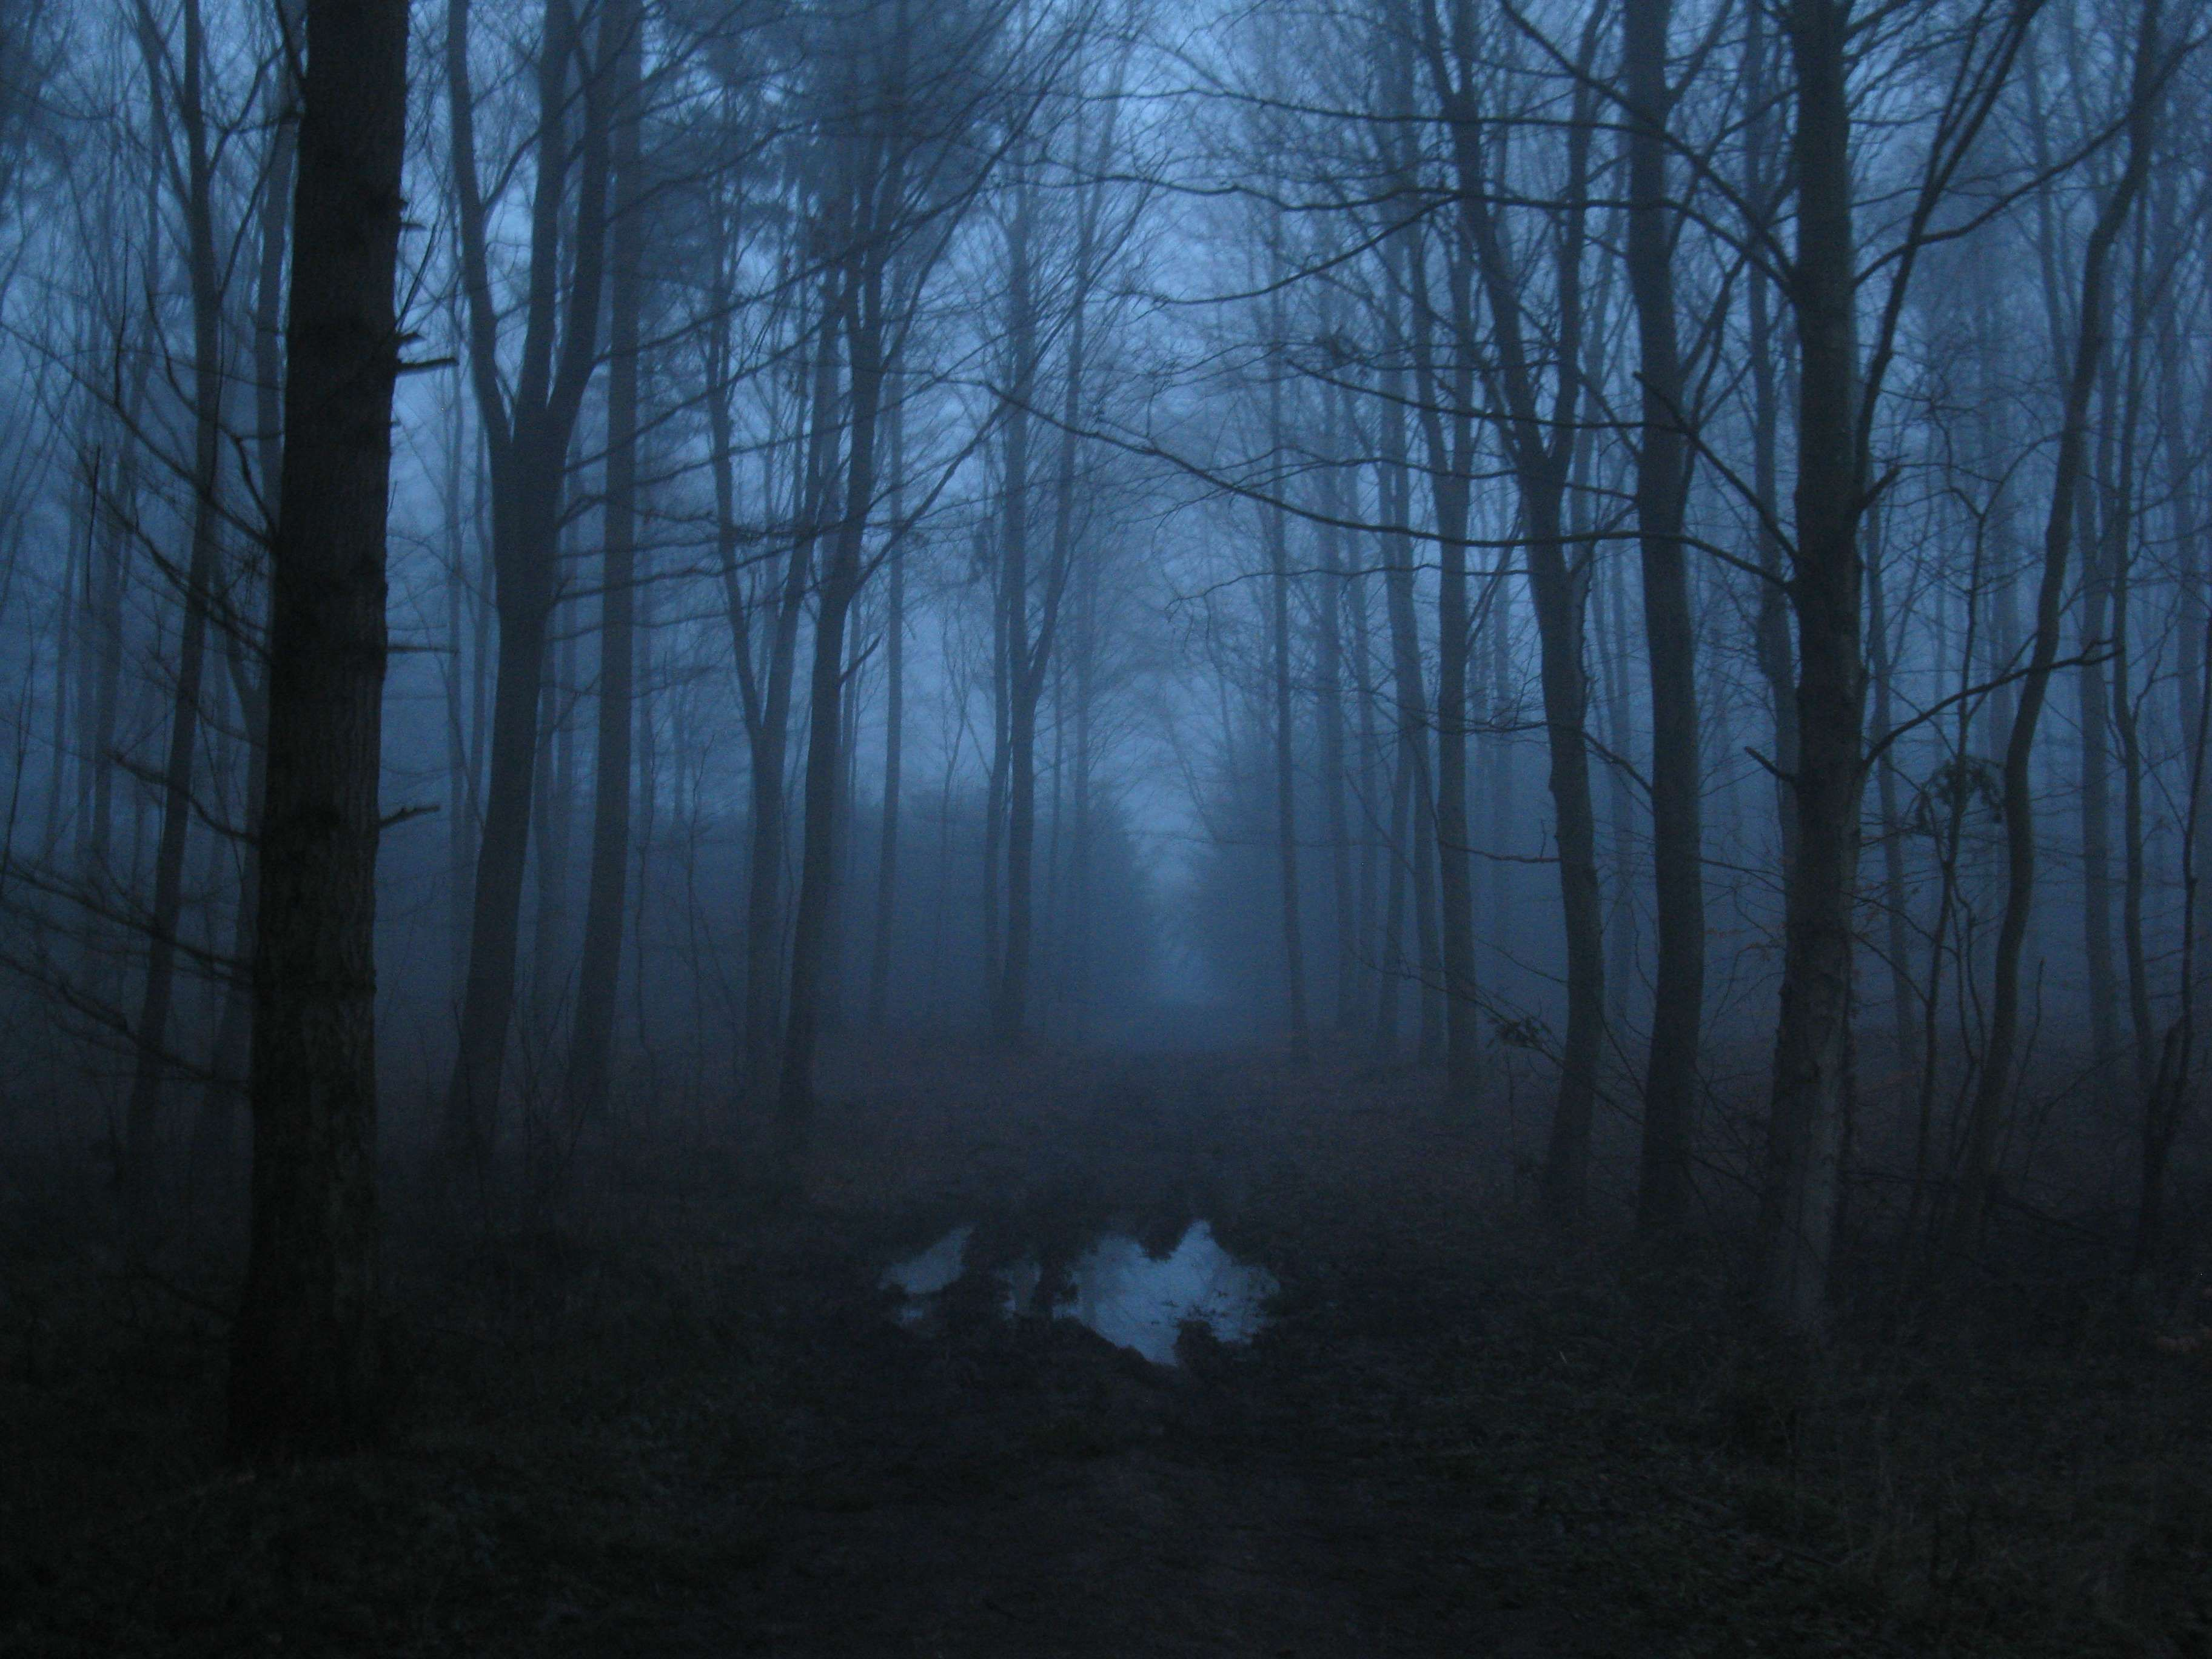 Fog Foggy Forest Forest Path Nature Scary Foggy Forest Scary Wallpaper Forest Path